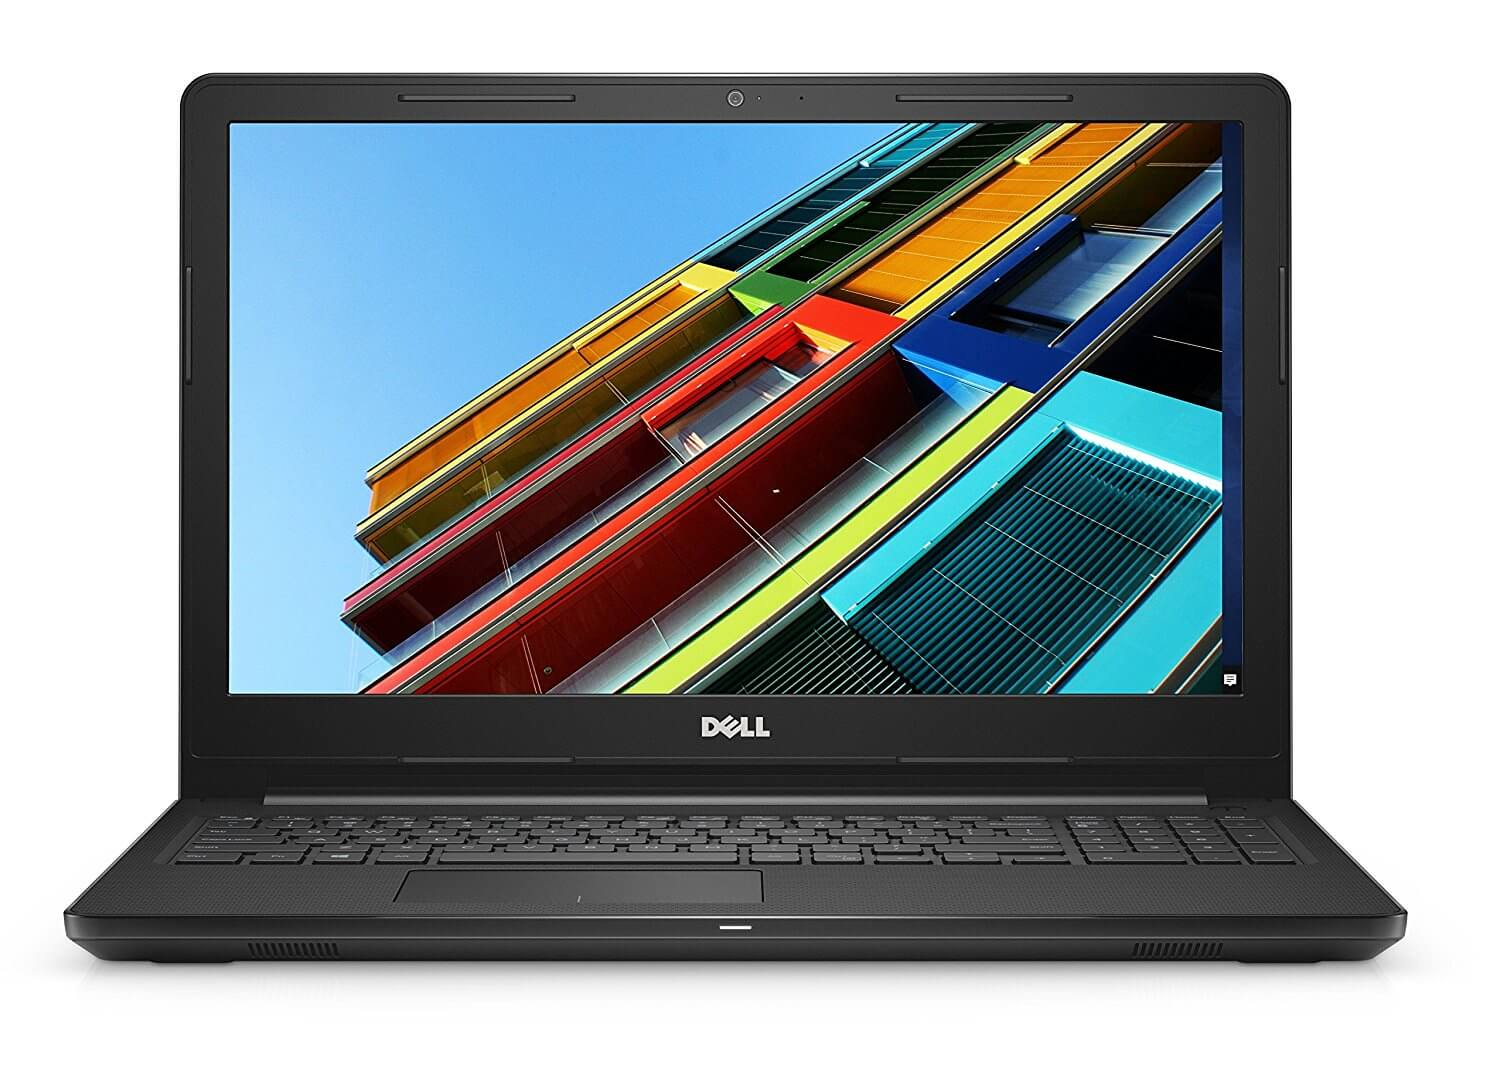 Brand Dell Item Weight 2.3 Kg Product Dimensions 38 x 26 x 2.4 cm Batteries: 1 Lithium ion batteries required. (included) Item model number 4M5GD Series Inspiron 15 3000 Color Black Form Factor Notebook Screen Size 39.6 centimetres Screen Resolution 1366 x 768 pixels Maximum Display Resolution 1366 x 768 pixels Processor Brand Intel Processor Type Core i3 Processor Speed 2 GHz Processor Count 1 RAM Size 4 GB Computer Memory Type DDR4 SDRAM Hard Drive Size 1 TB Hard Disk Technology HDD Number of USB 2.0 Ports 1 Number of USB 3.0 Ports 2 Number of HDMI Ports 1 Optical Drive Type DVD/RW Operating System Windows 10